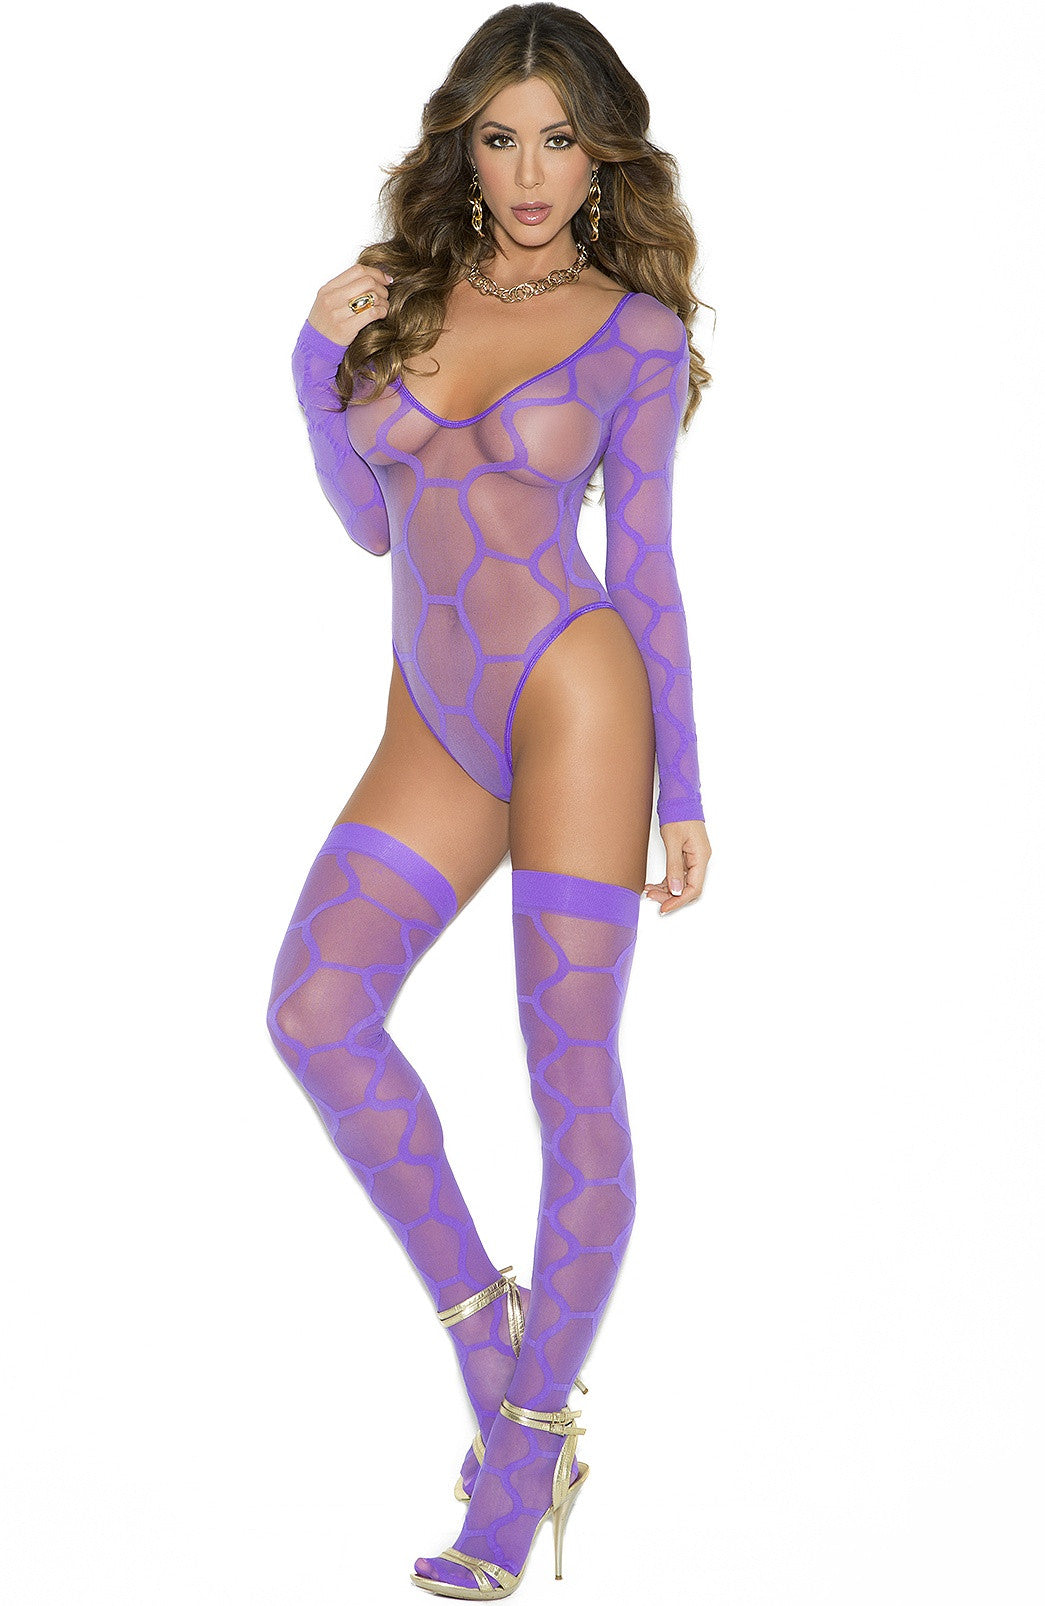 EM-1542 Amazing purple teddy set - Sexylingerieland